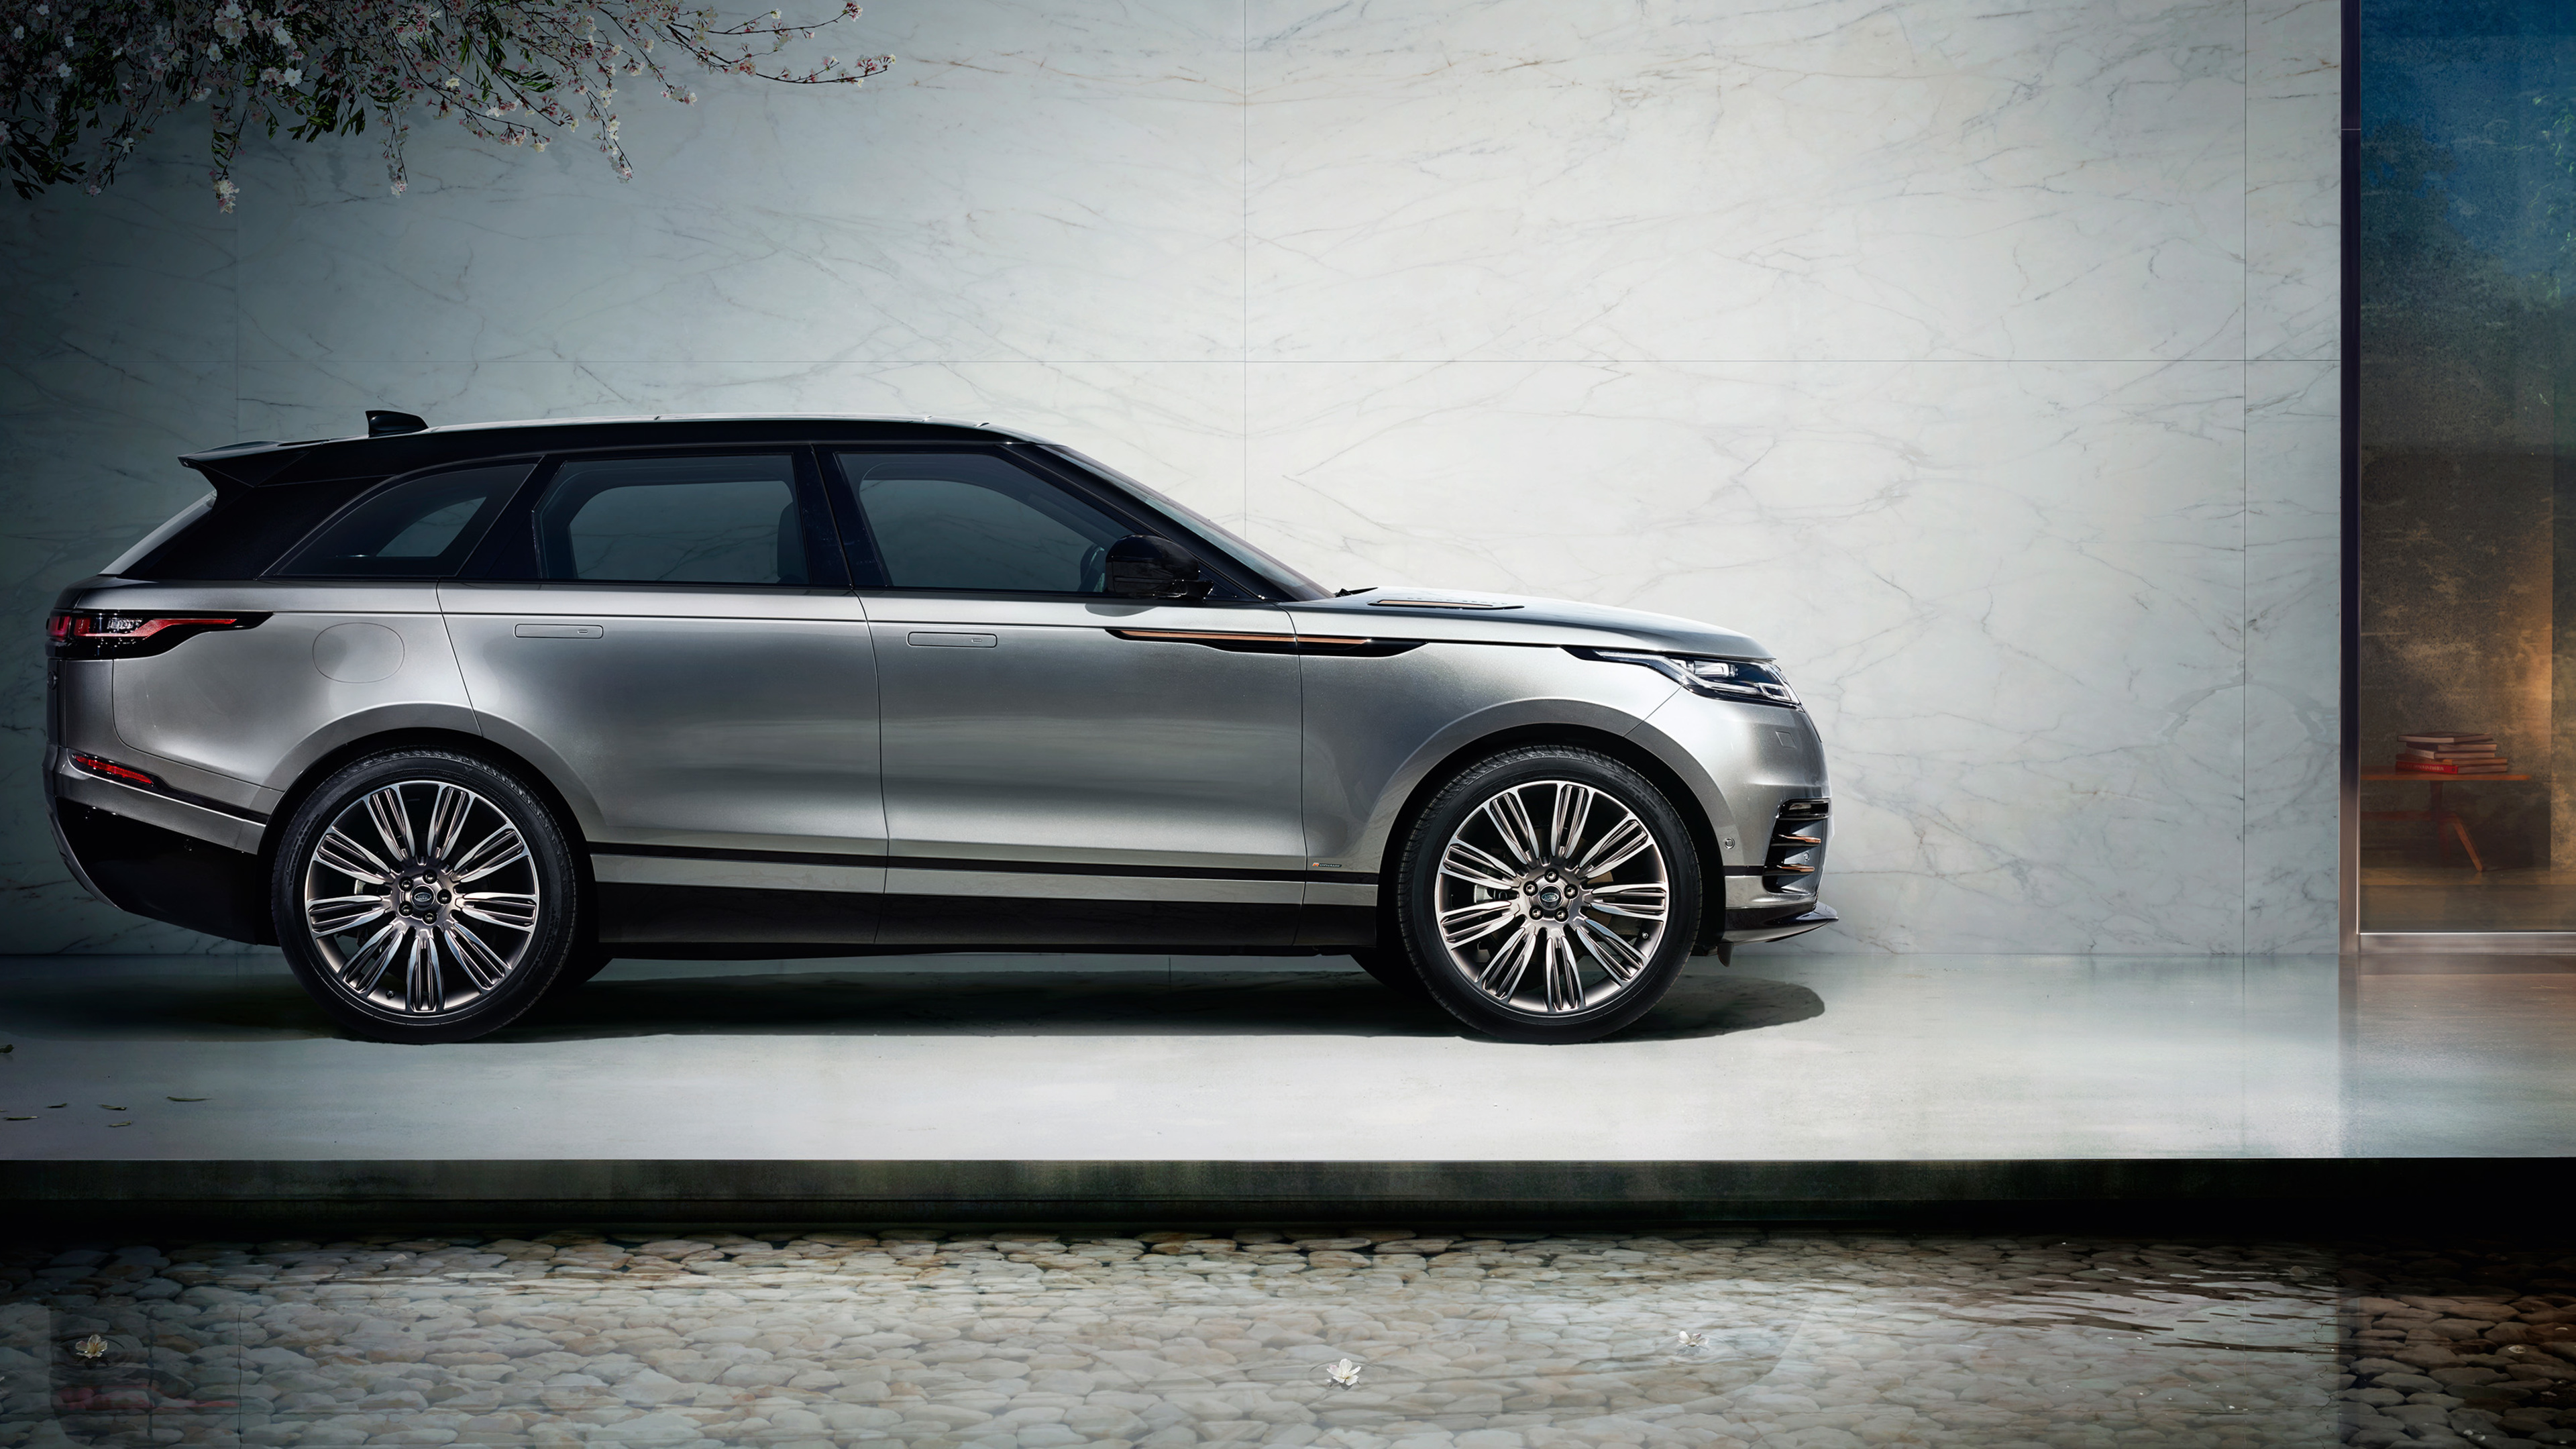 Wallpaper 4k Range Rover Velar 2018 Cars Wallpapers 4k